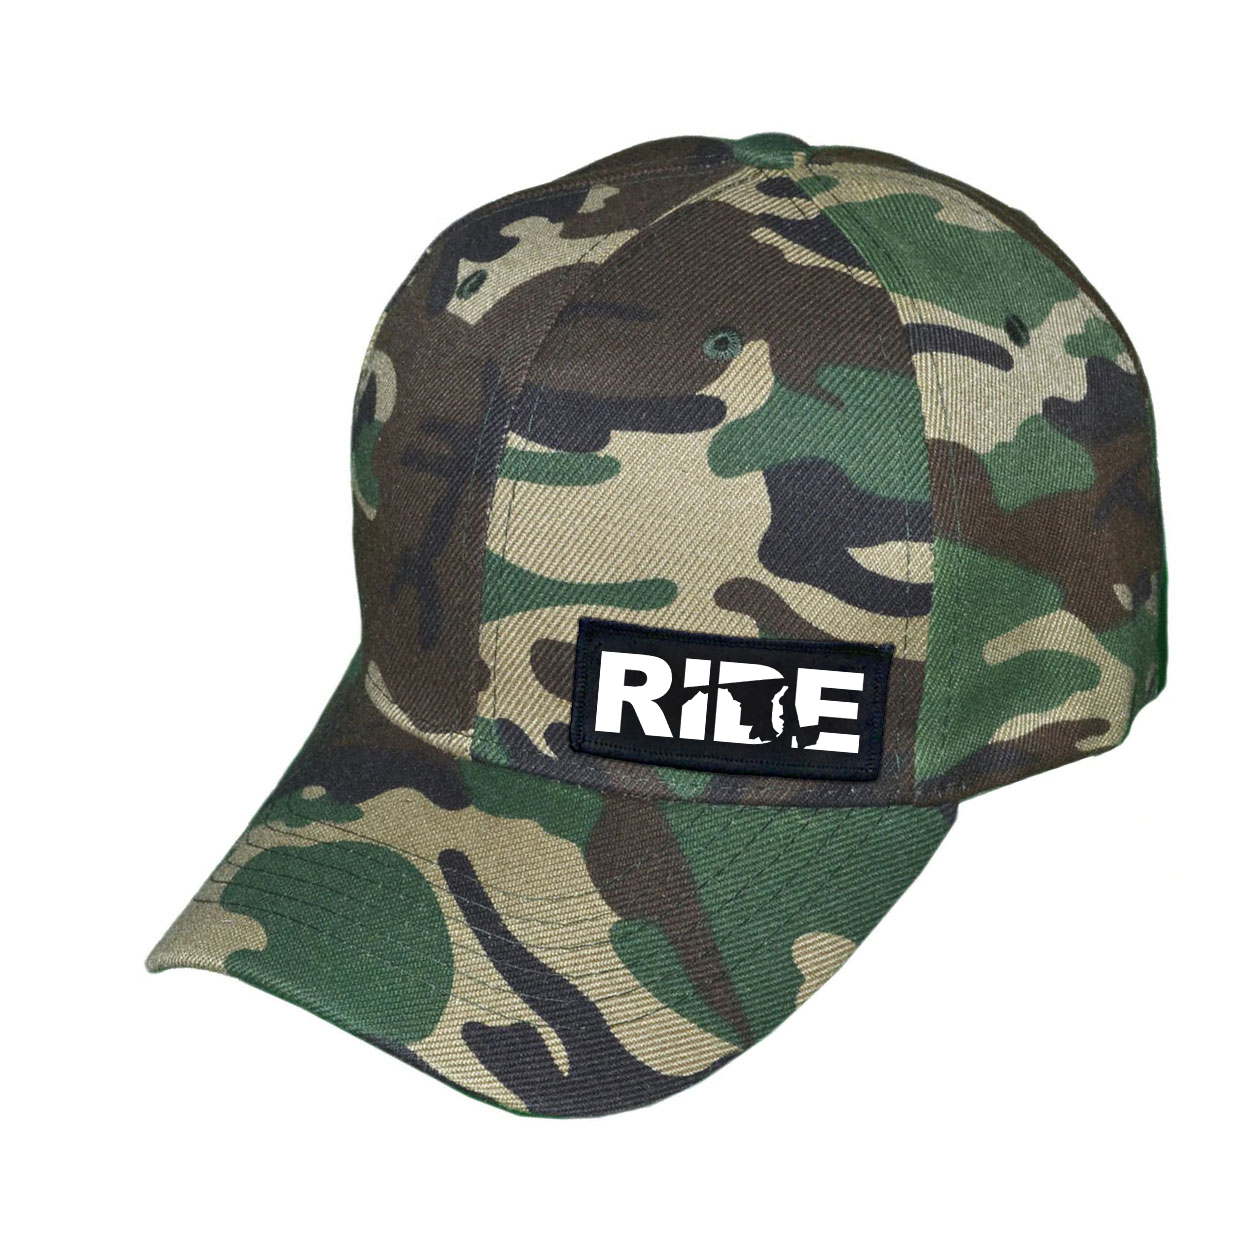 Ride Maryland Night Out Woven Patch Hat Camo (White Logo)